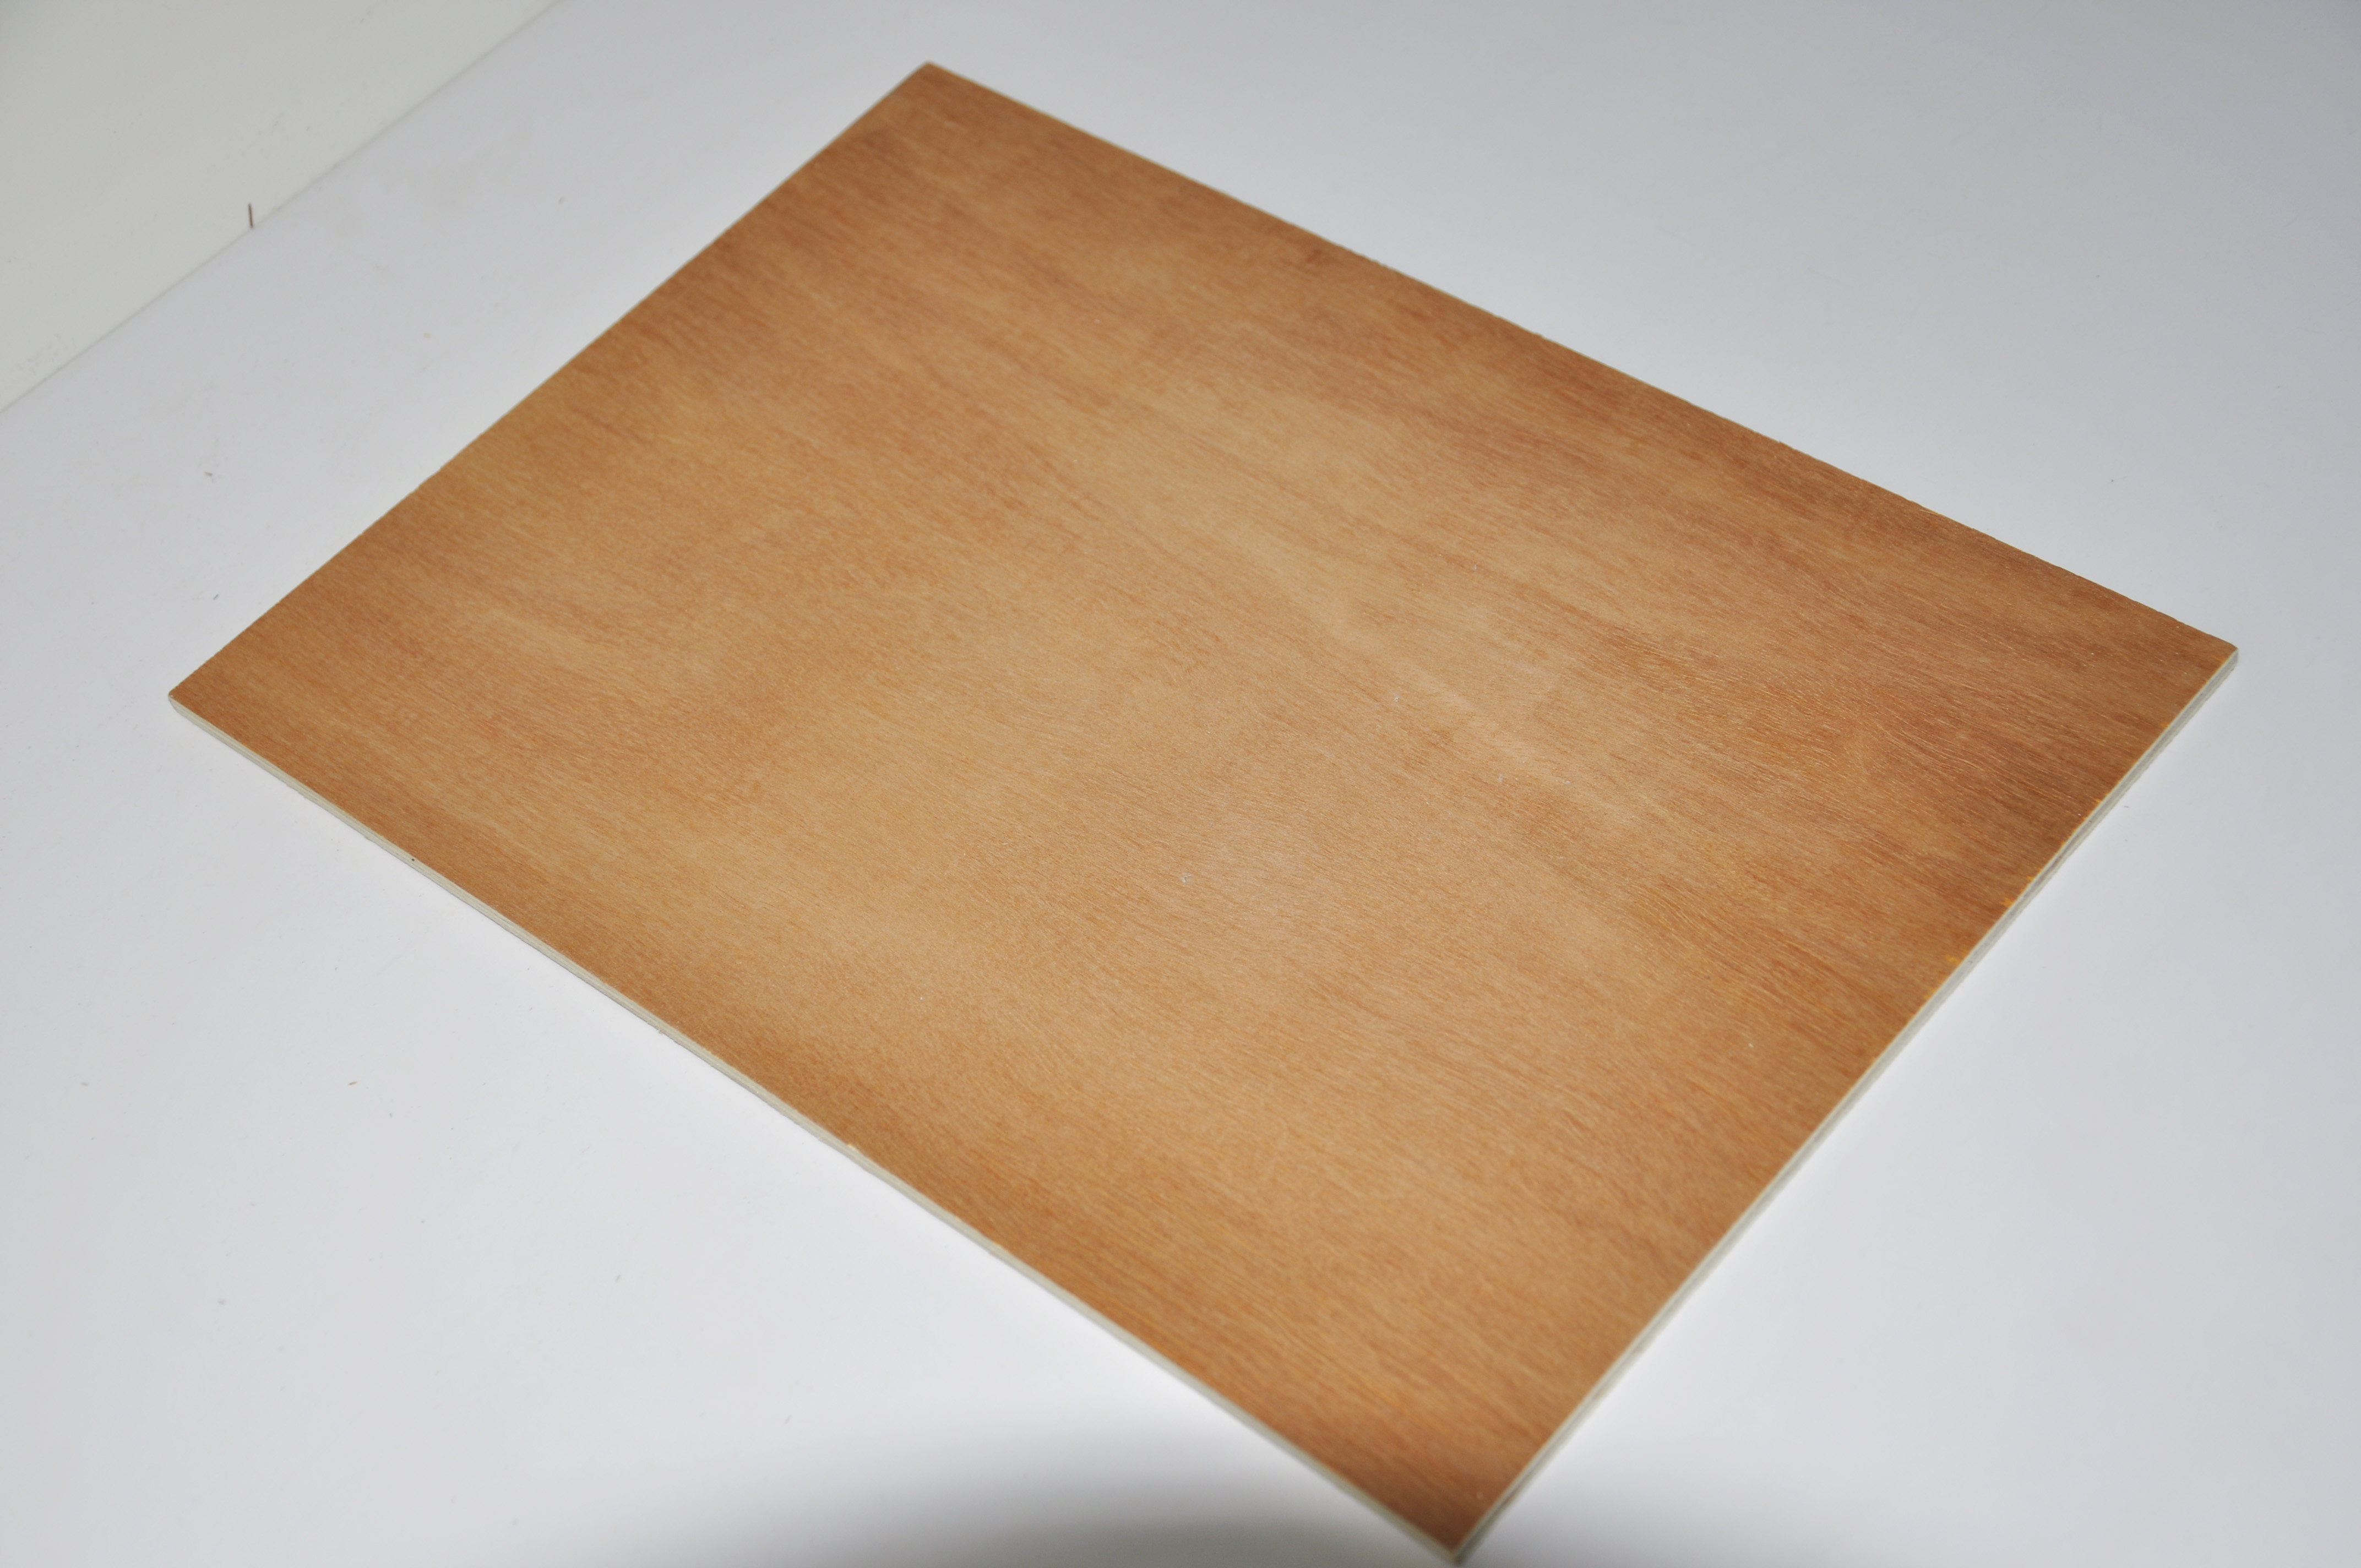 2mm Thin Form Okoume Veneer Plywood For Furniture And Decorative Usage Buy 2mm Thin Plywood Thin Form Plywood Thin Okoume Plywood Product On Alibaba Com